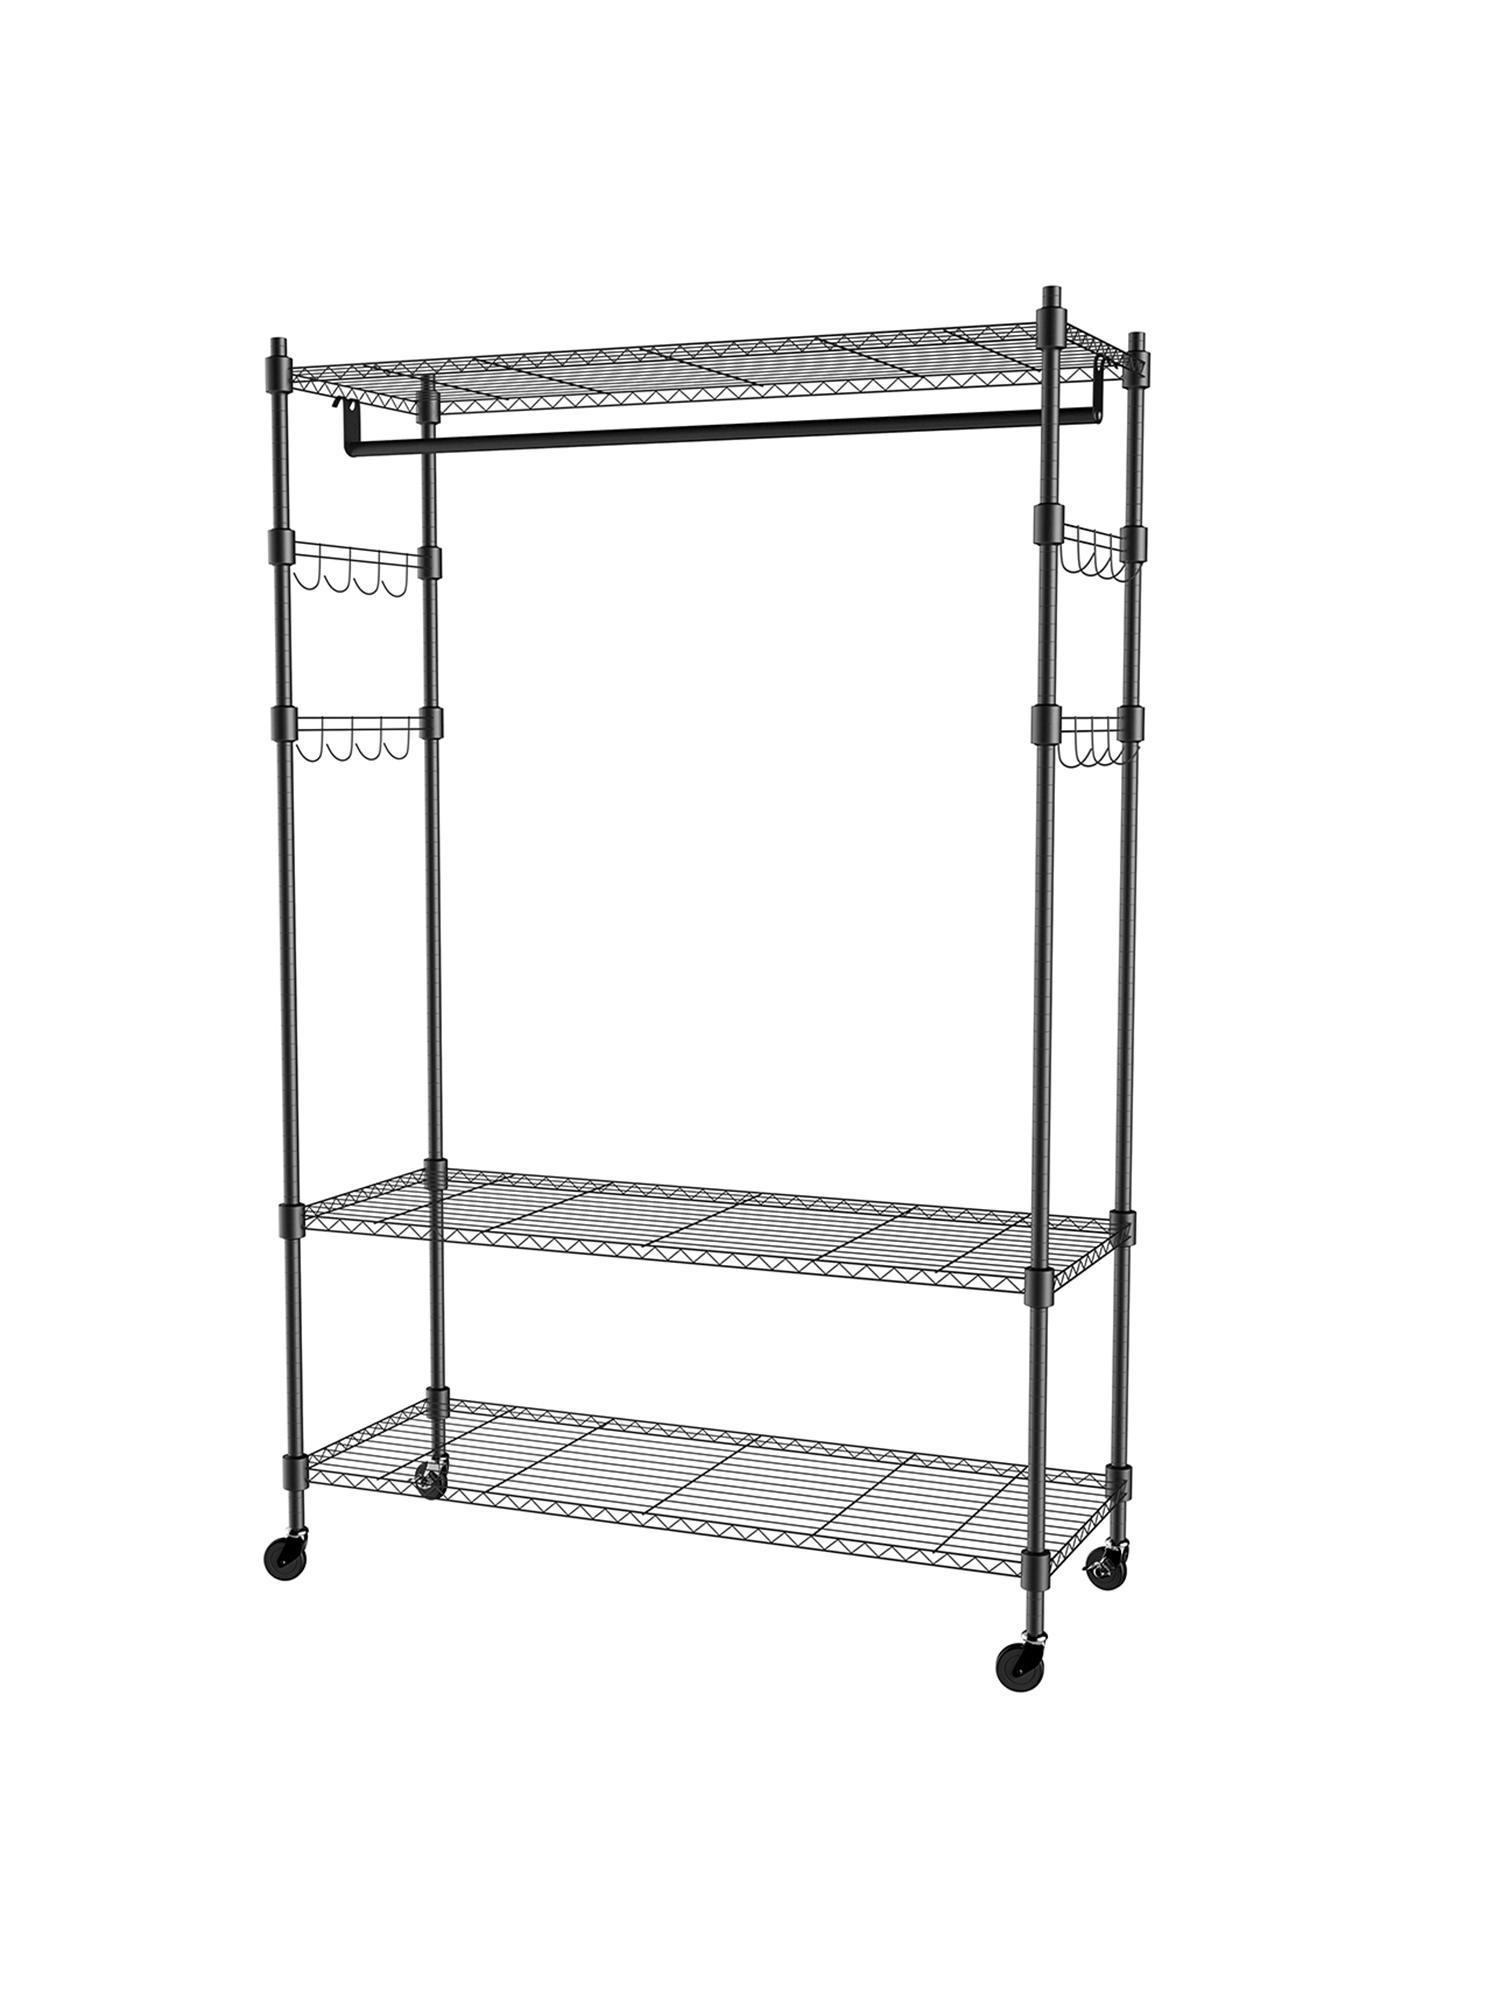 3 tier rolling closet garment rack with double rod lockable wheels and side hooks heavy duty clothes rack closet storage organizer us stock